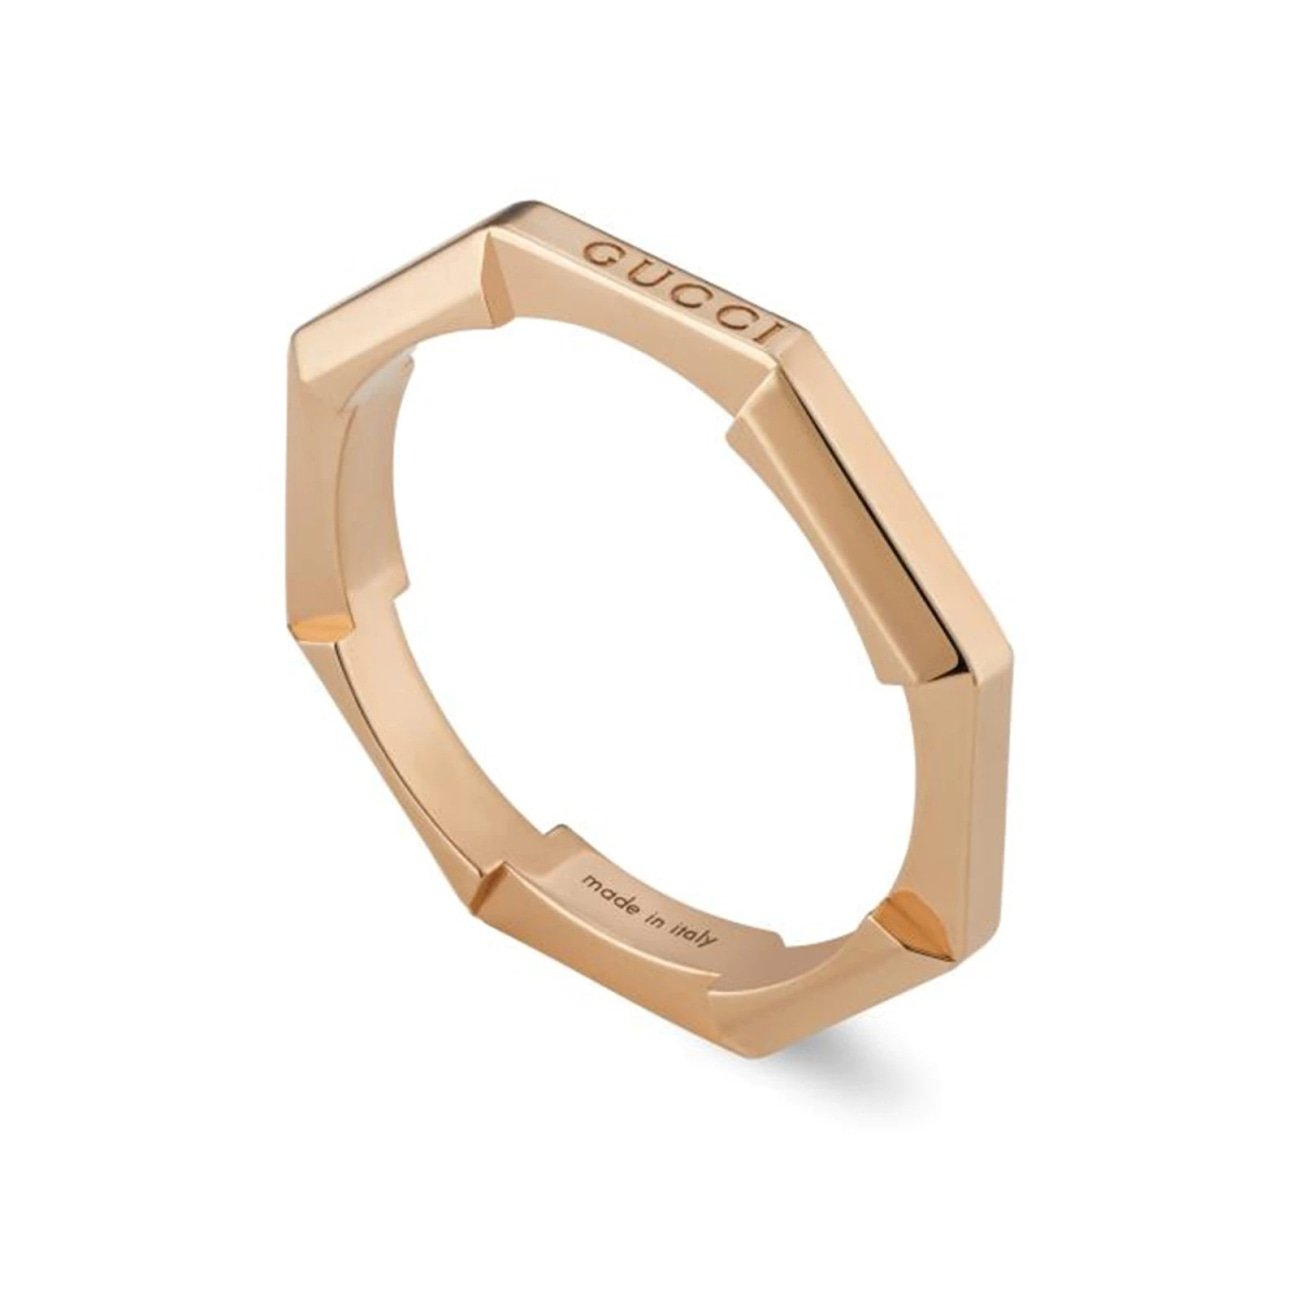 https://www.manfredijewels.com/collections/jewelry/products/18k-rose-gold-link-to-love-mirrored-ring-size